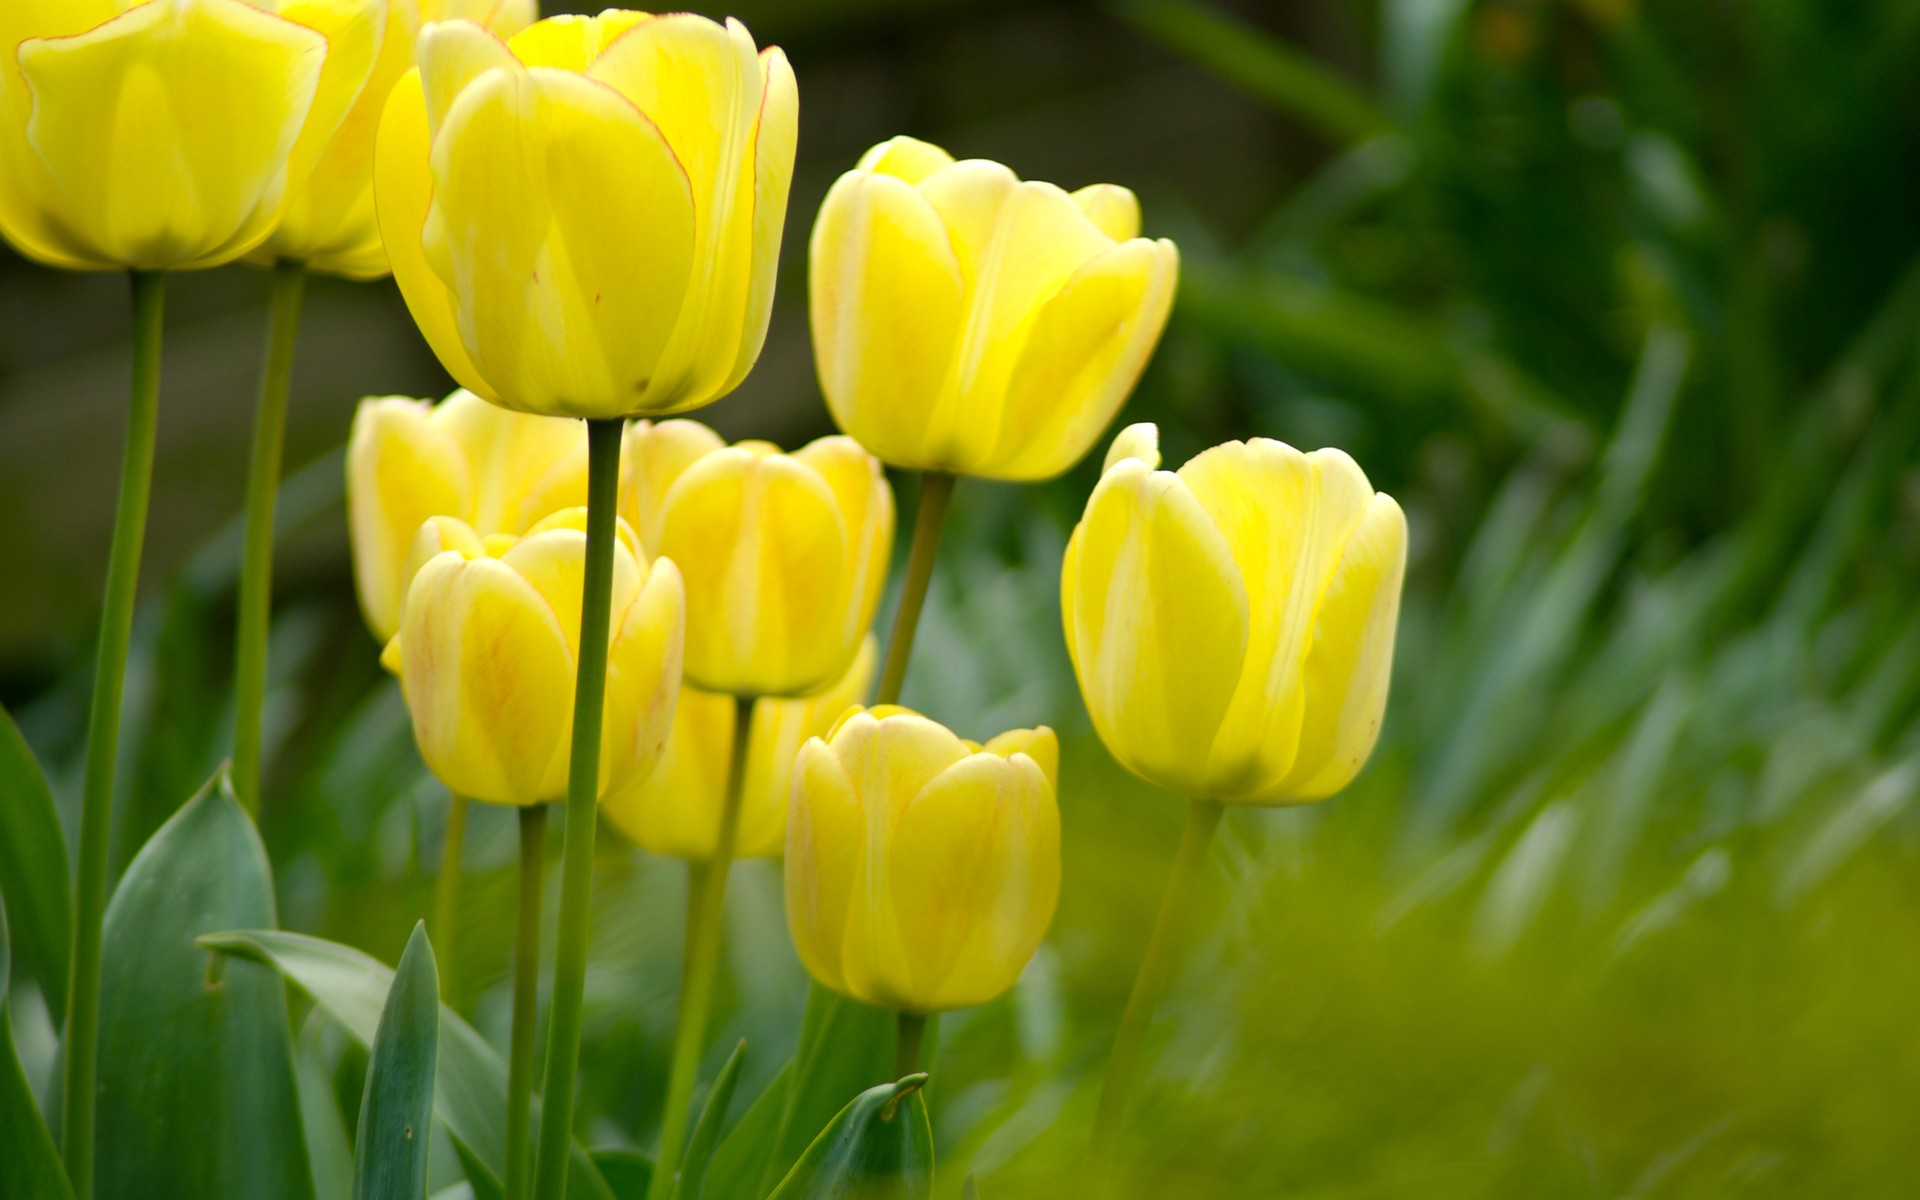 Wallpapers for Desktop with flowers, nature, wallpaper, yellow, animated, background, tulips